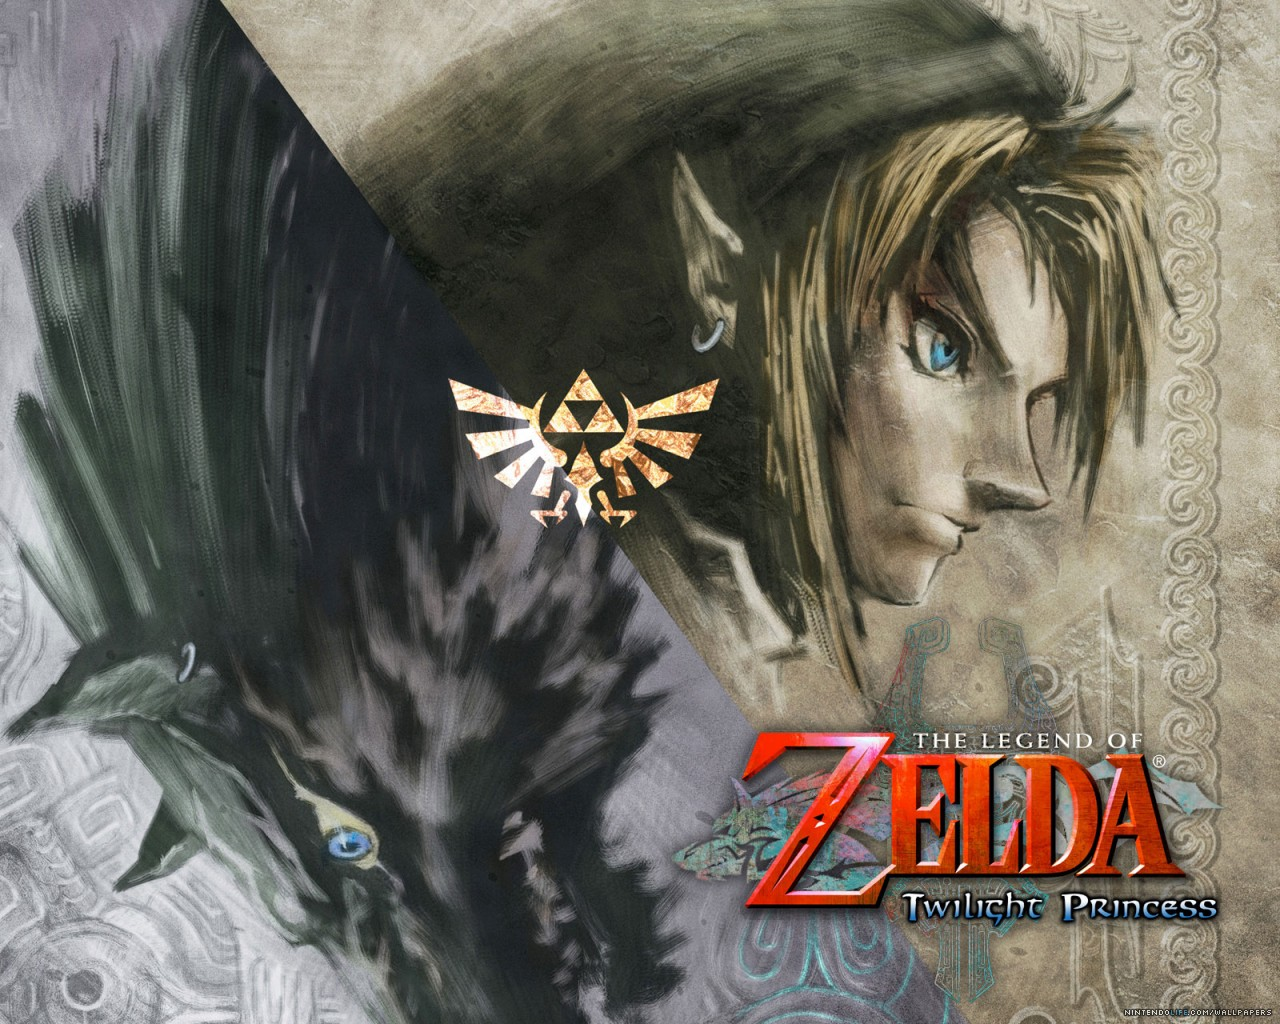 of Zelda Twilight Princess Twilight Princess Wallpapers fanpopcom 1280x1024